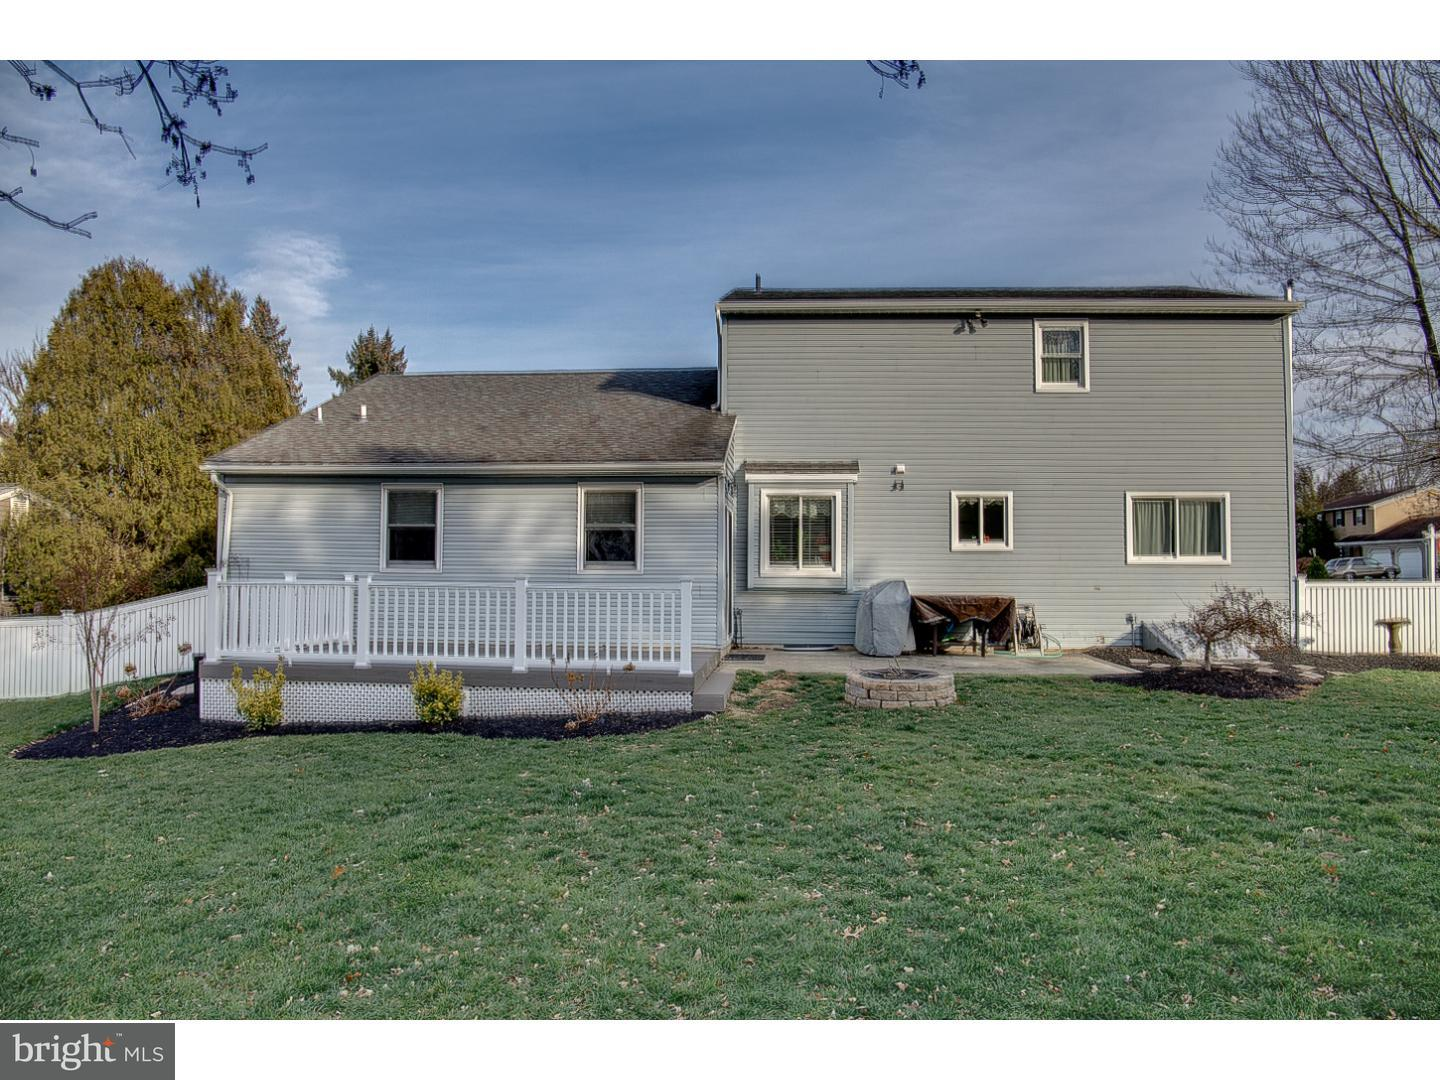 100 CHESTNUT DR, QUAKERTOWN - Listed at $310,000, QUAKERTOWN